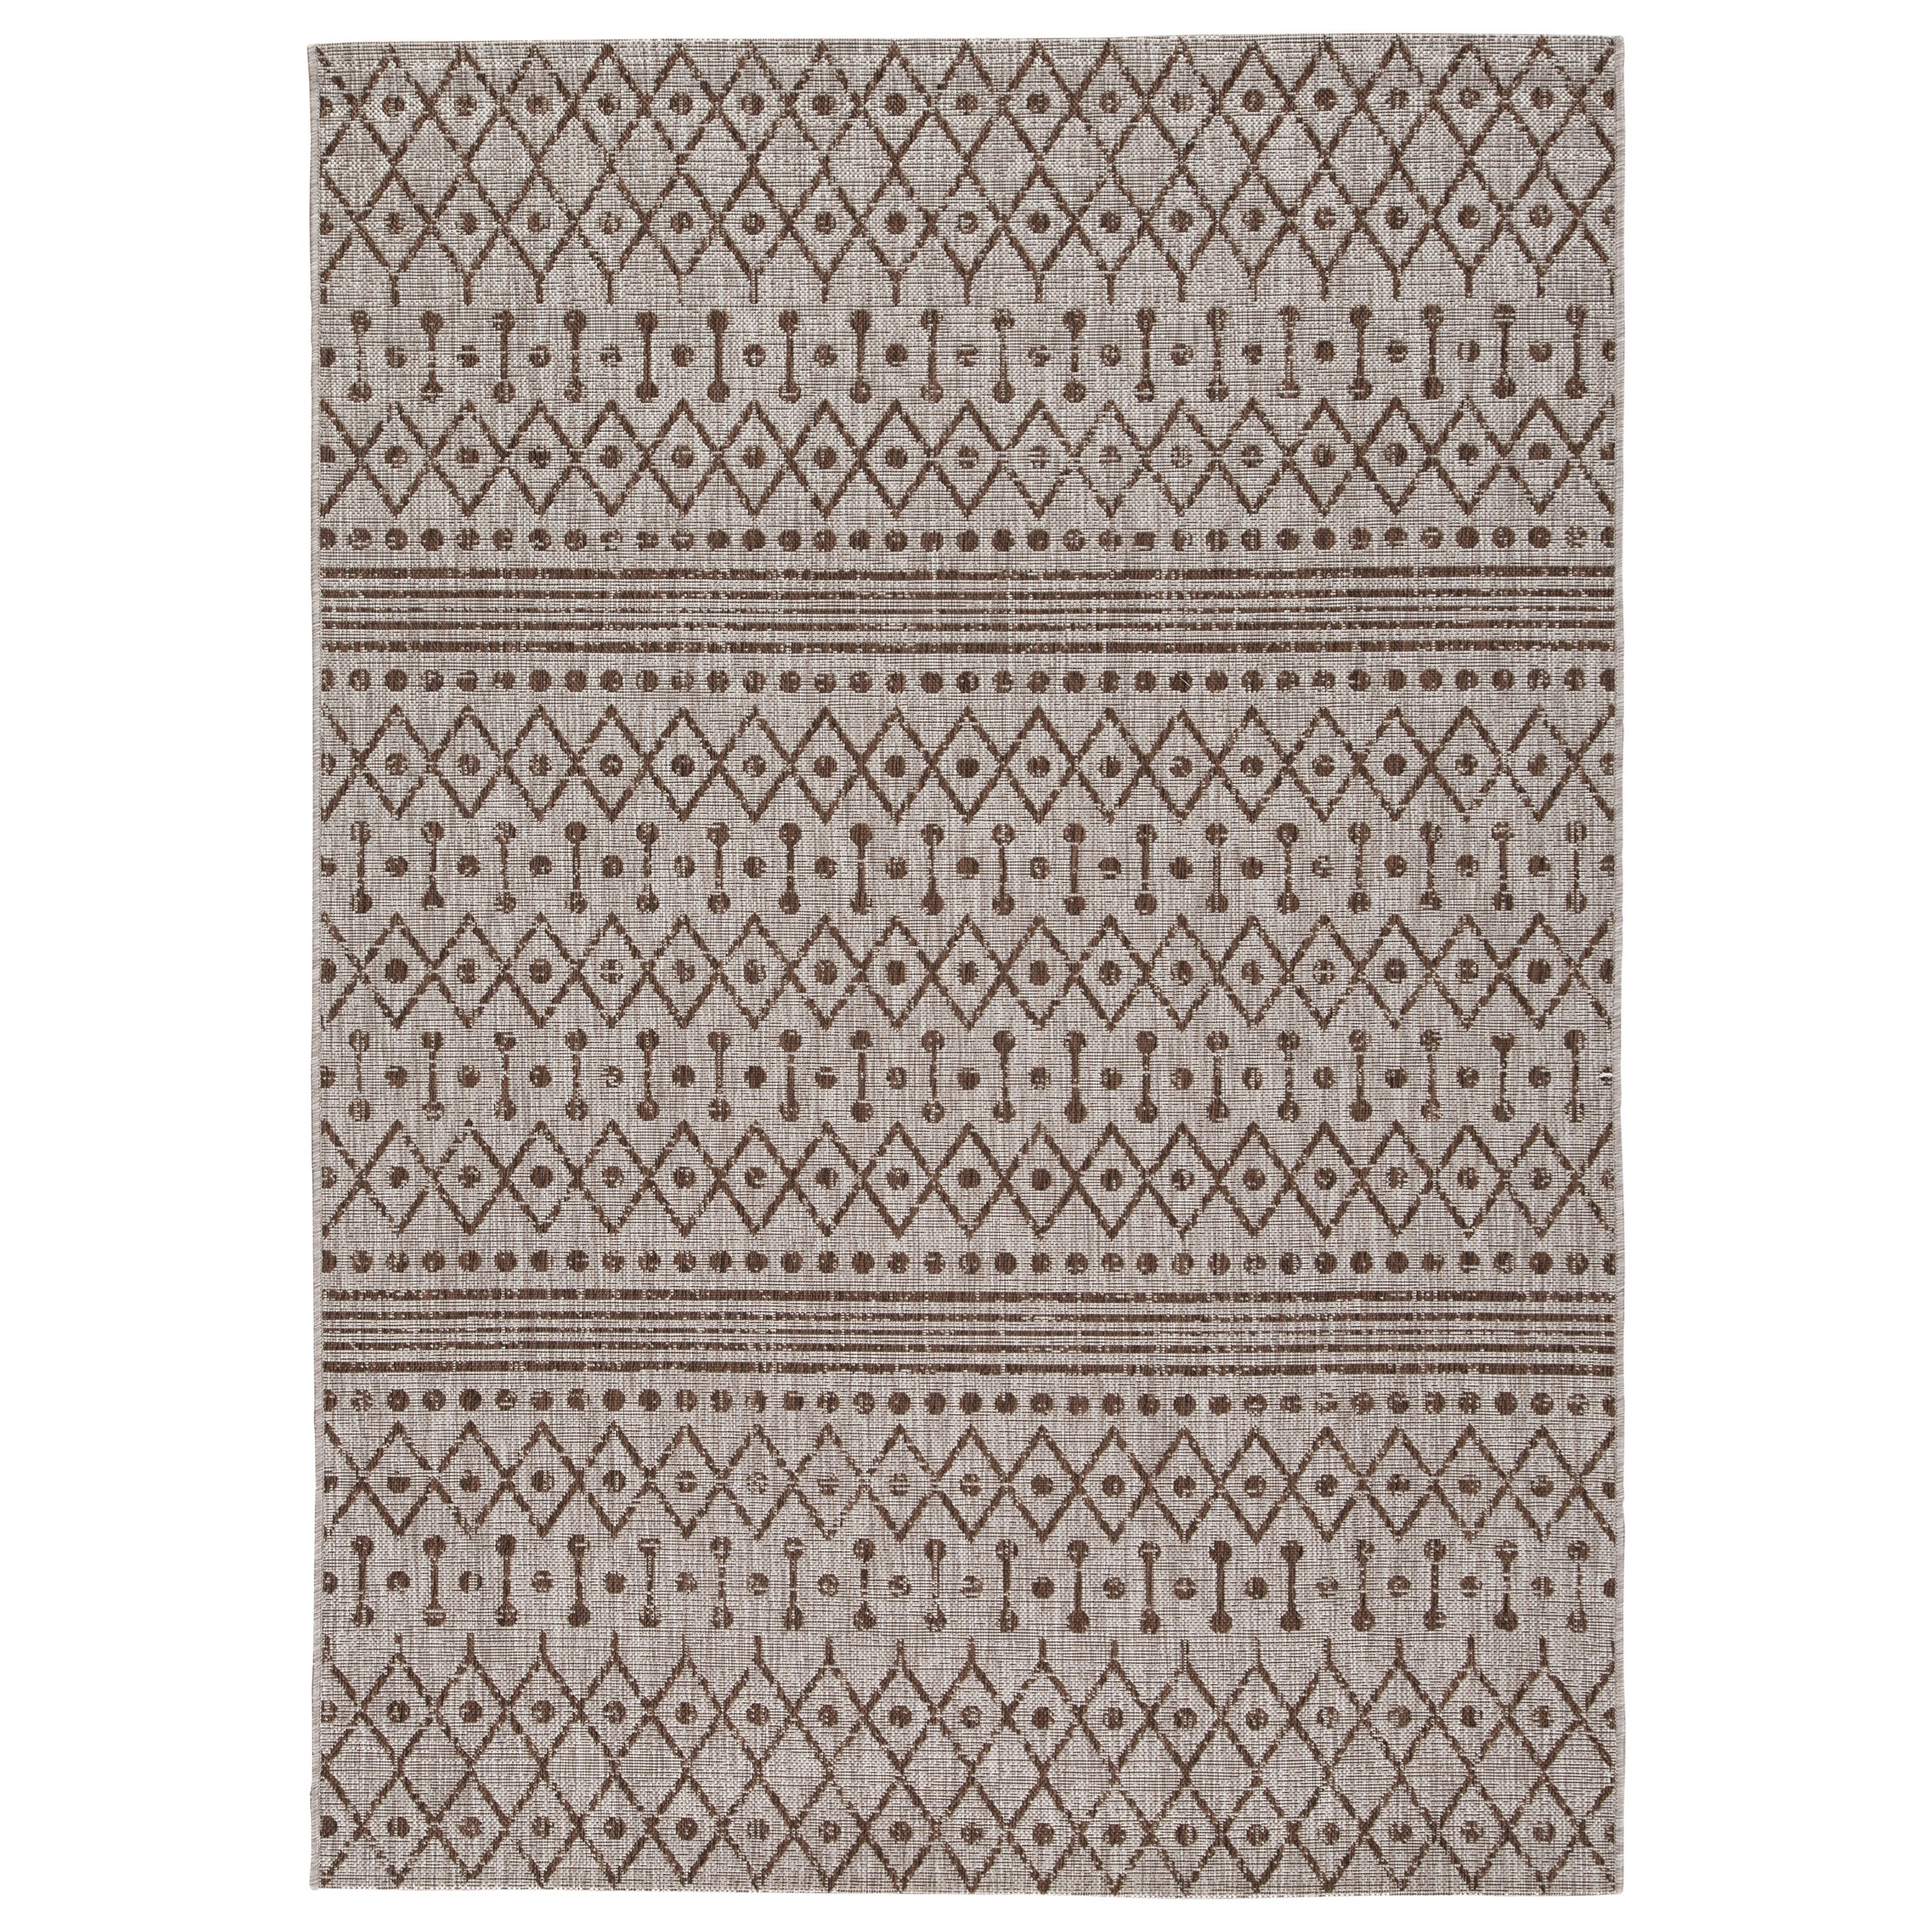 Casual Area Rugs Dubot Tan/Brown Indoor/Outdoor Large Rug by Signature Design by Ashley at Houston's Yuma Furniture